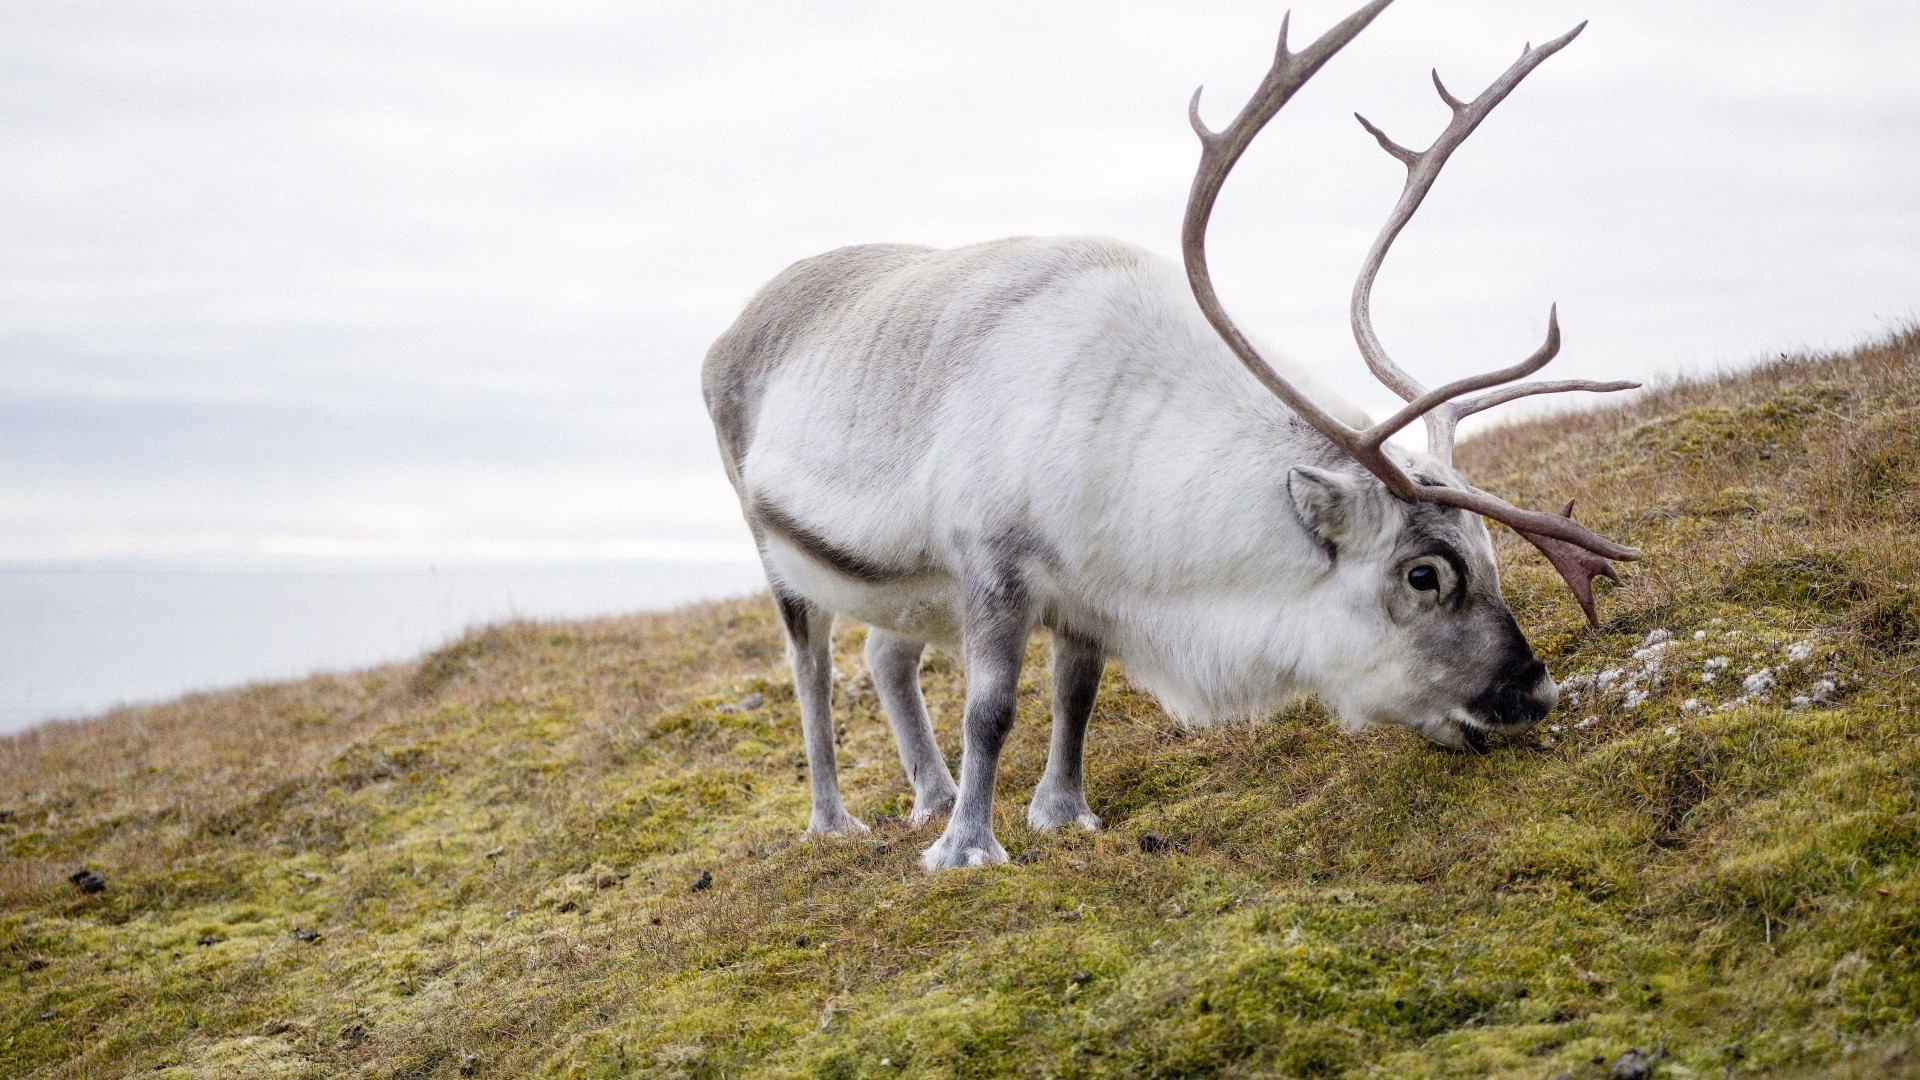 Reindeer wallpaper photo hd